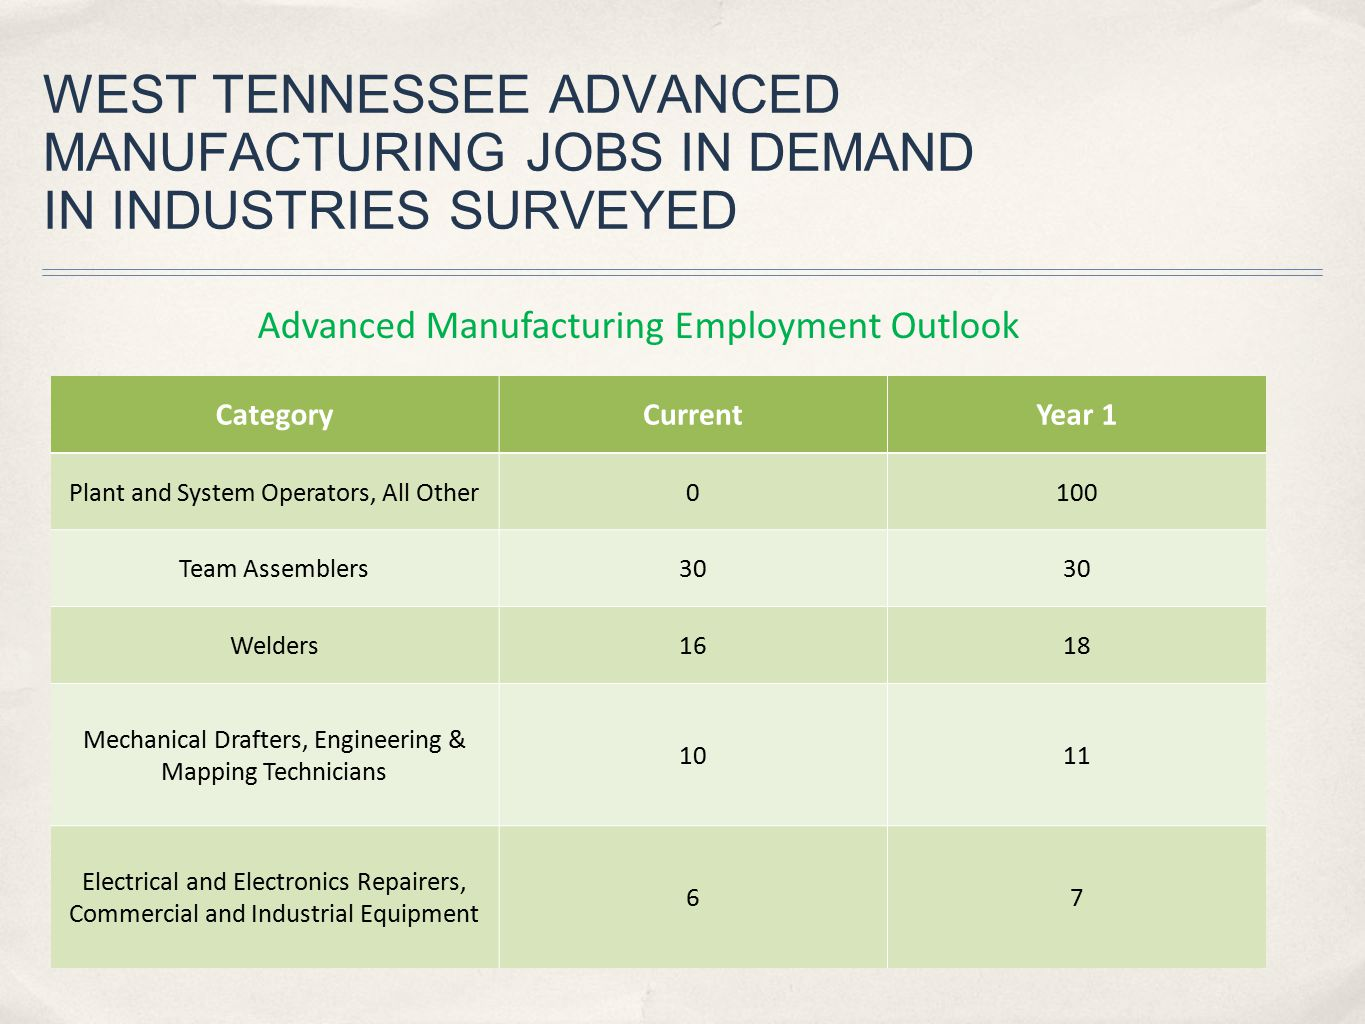 WEST TENNESSEE ADVANCED MANUFACTURING JOBS IN DEMAND IN INDUSTRIES SURVEYED CategoryCurrentYear 1 Plant and System Operators, All Other0100 Team Assem